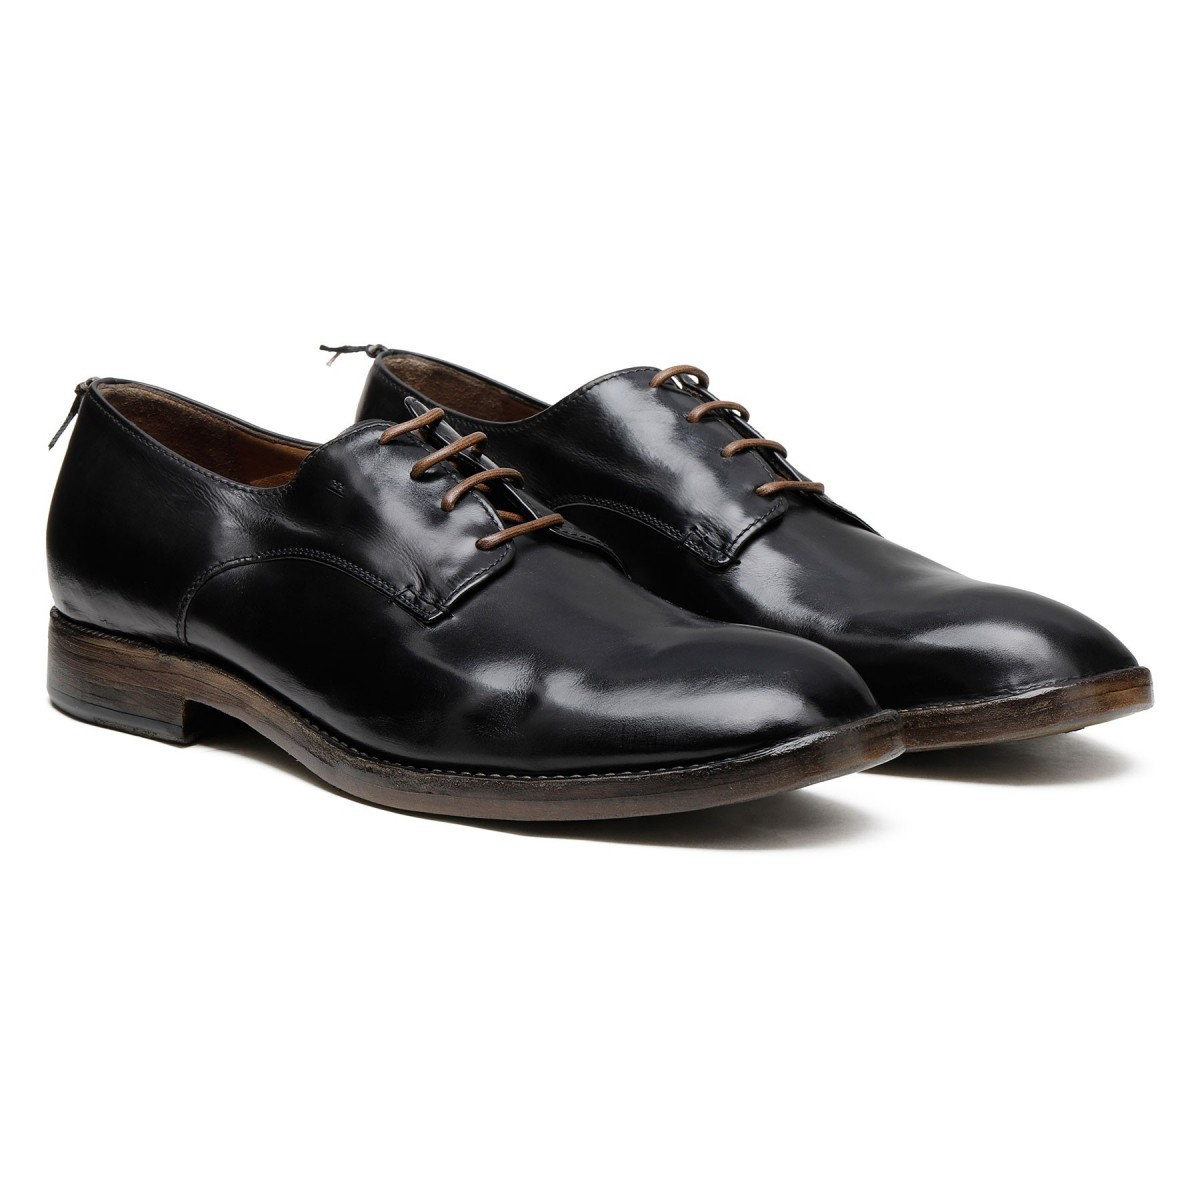 Black brushed leather Derby shoes